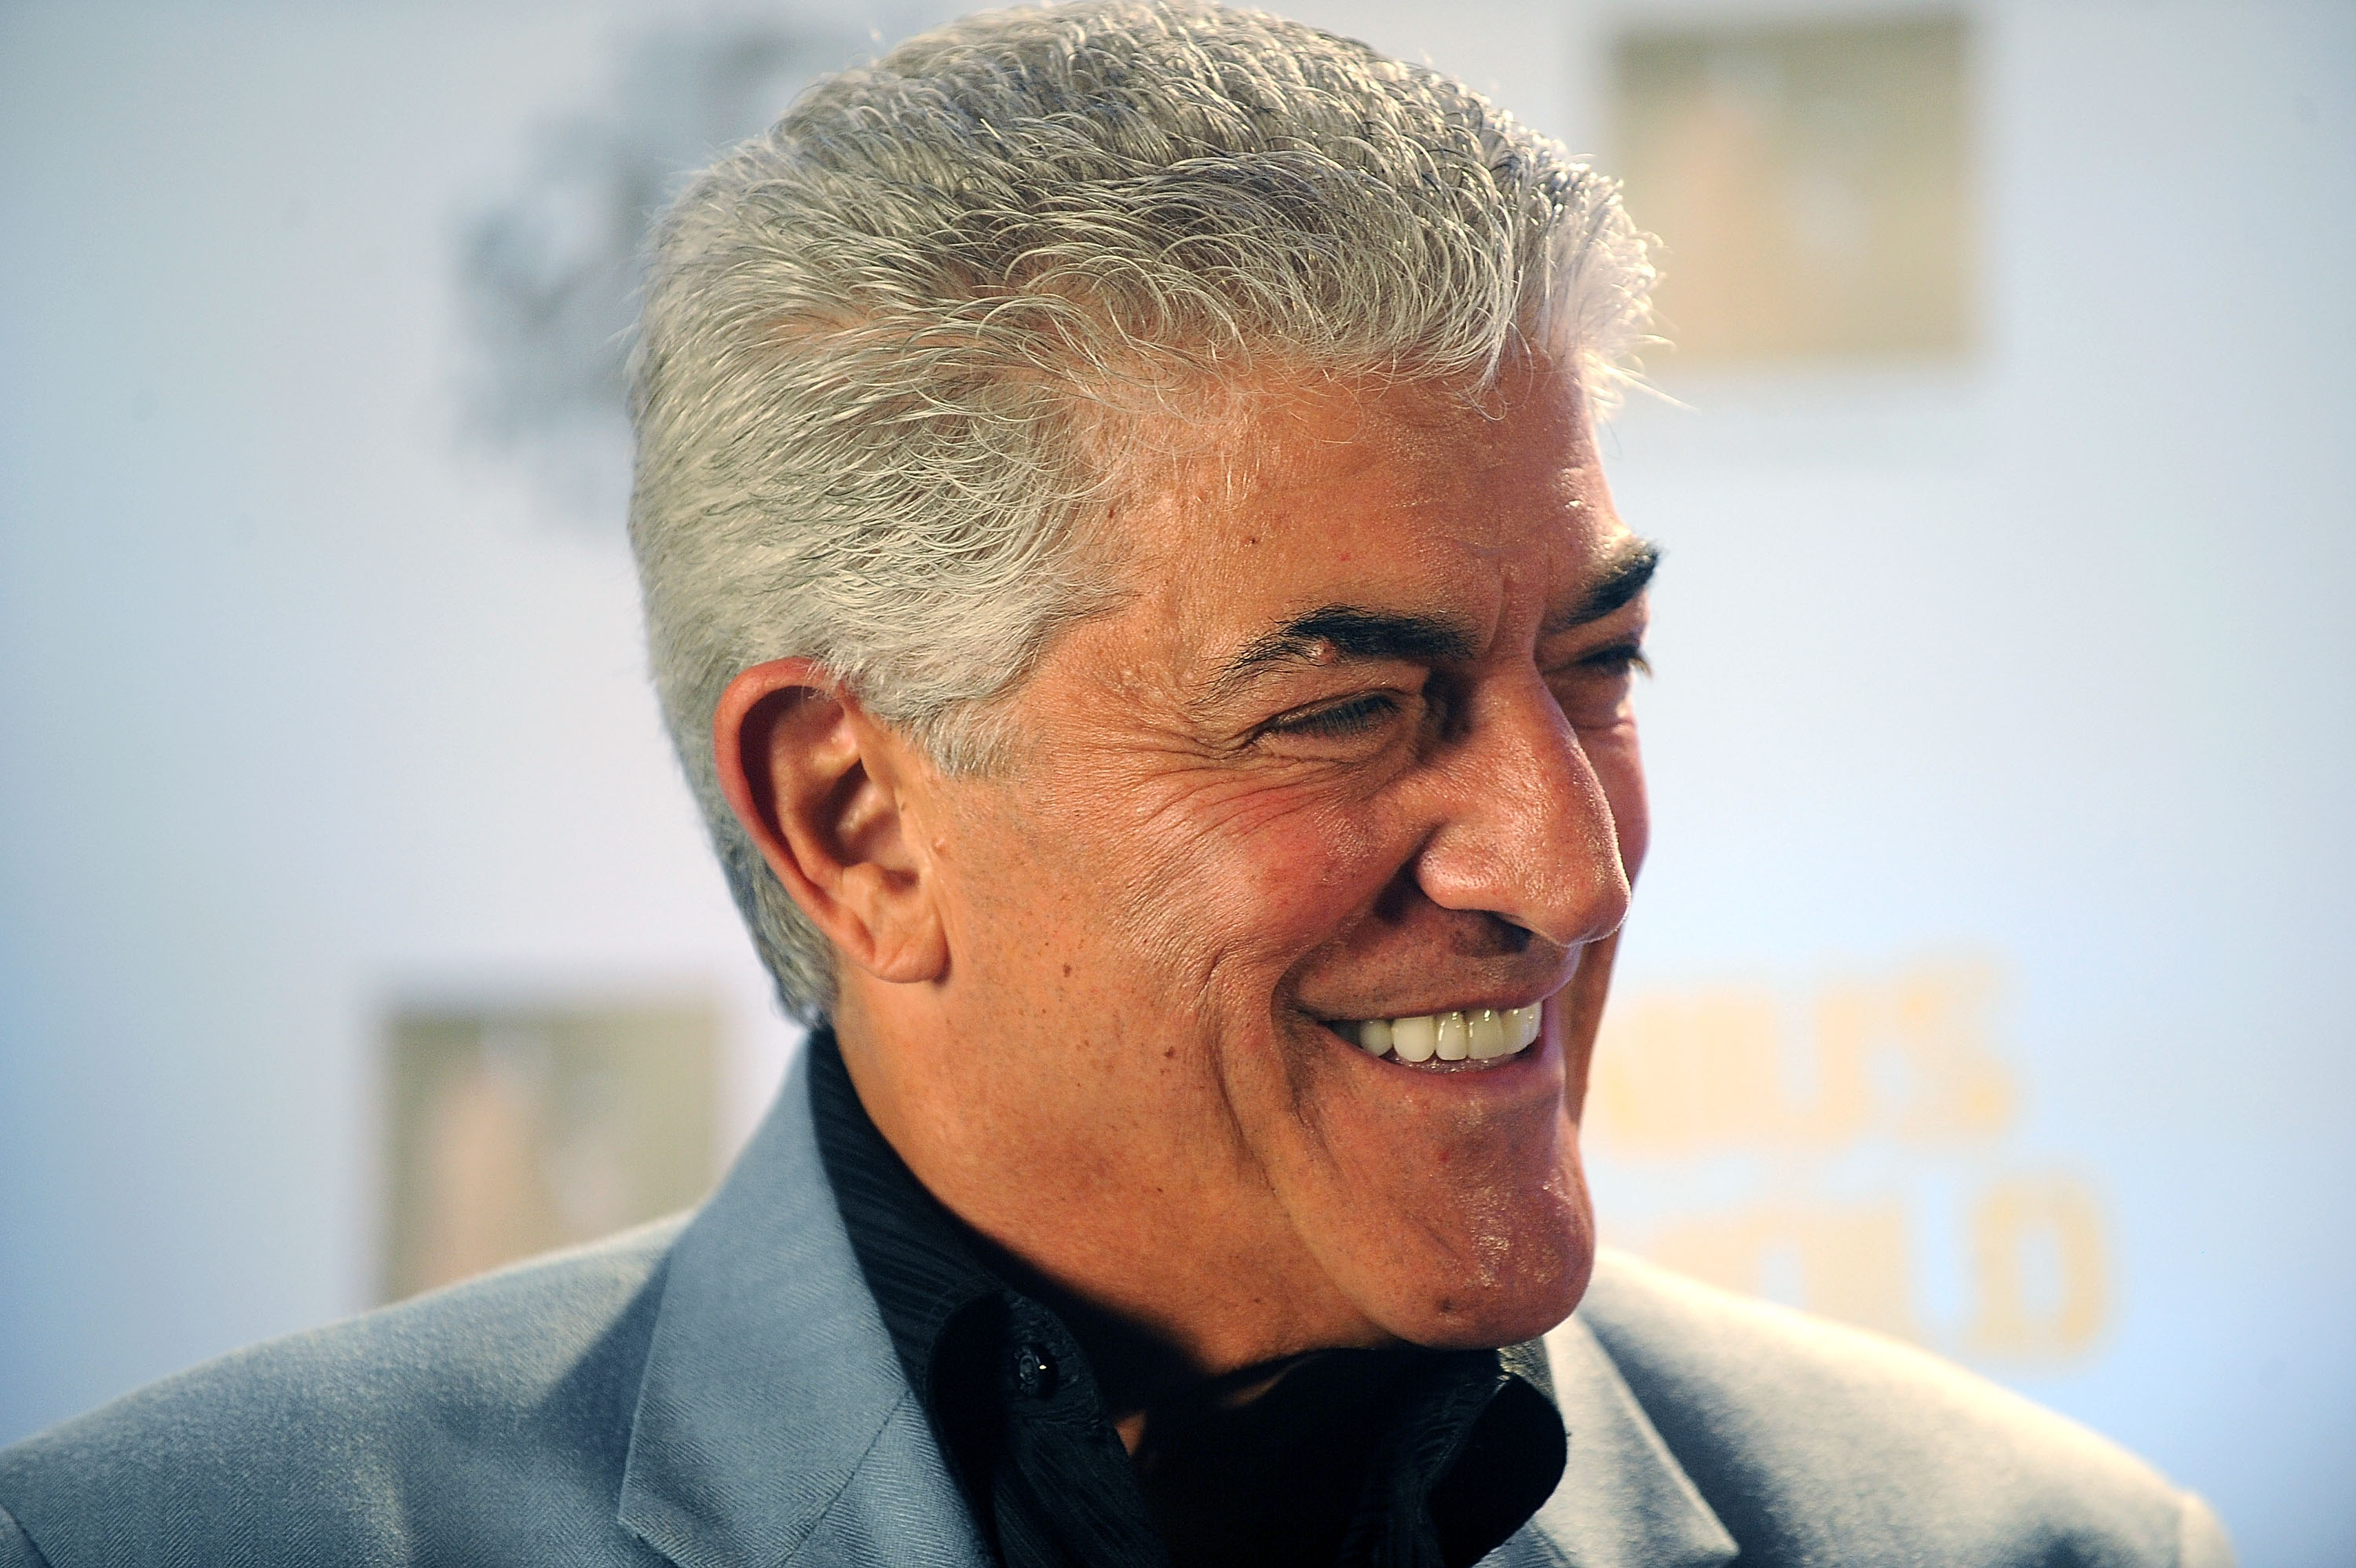 Actor Frank Vincent attends the Genius On Hold premiere at Cinema Paradiso on January 8, 2011 in Fort Lauderdale, Florida.